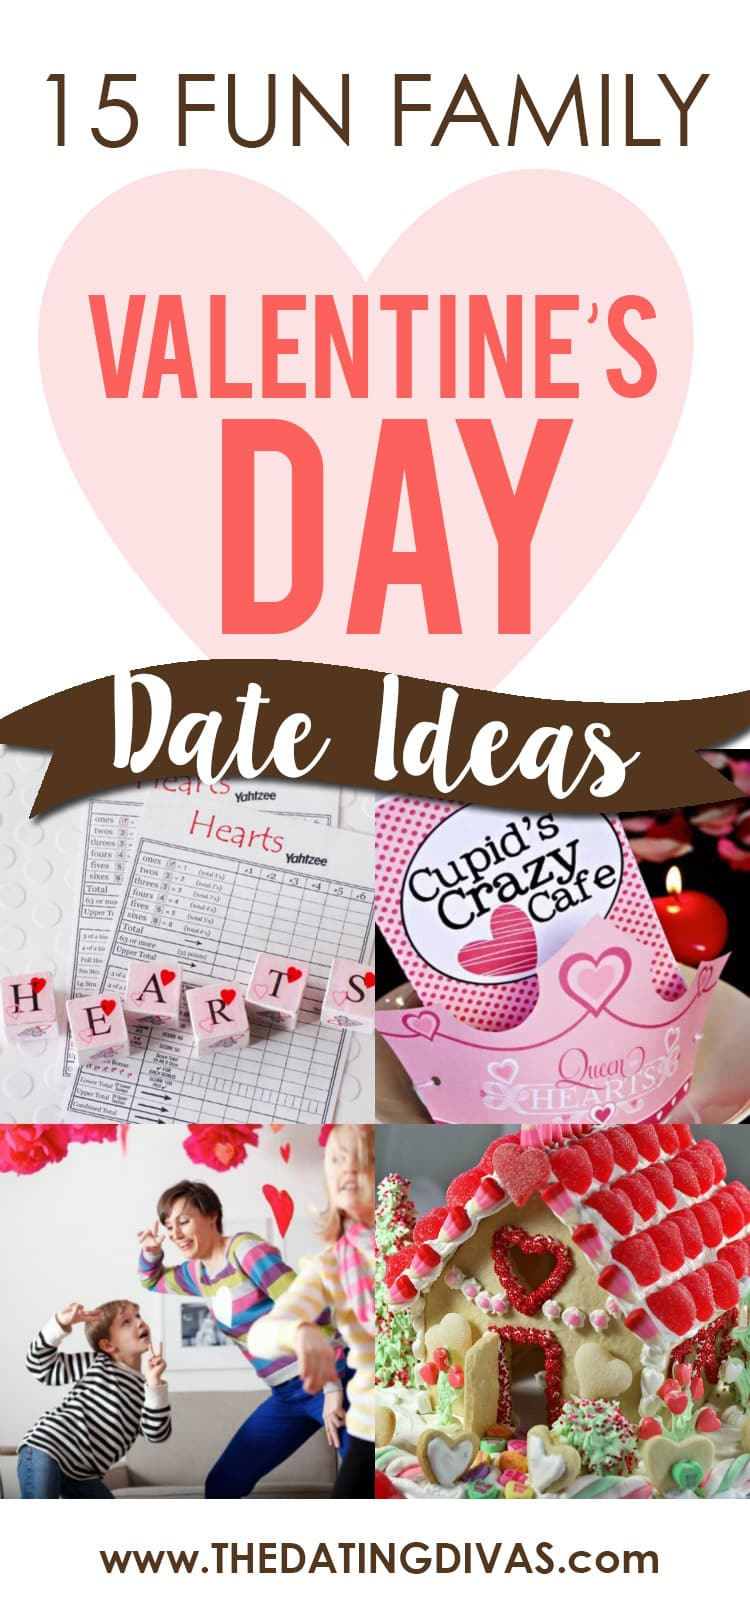 dating and valentines day If you're single and looking for something to do on valentine's day, either solo or with friends, there are so many events you can attend to celebrate the holiday.